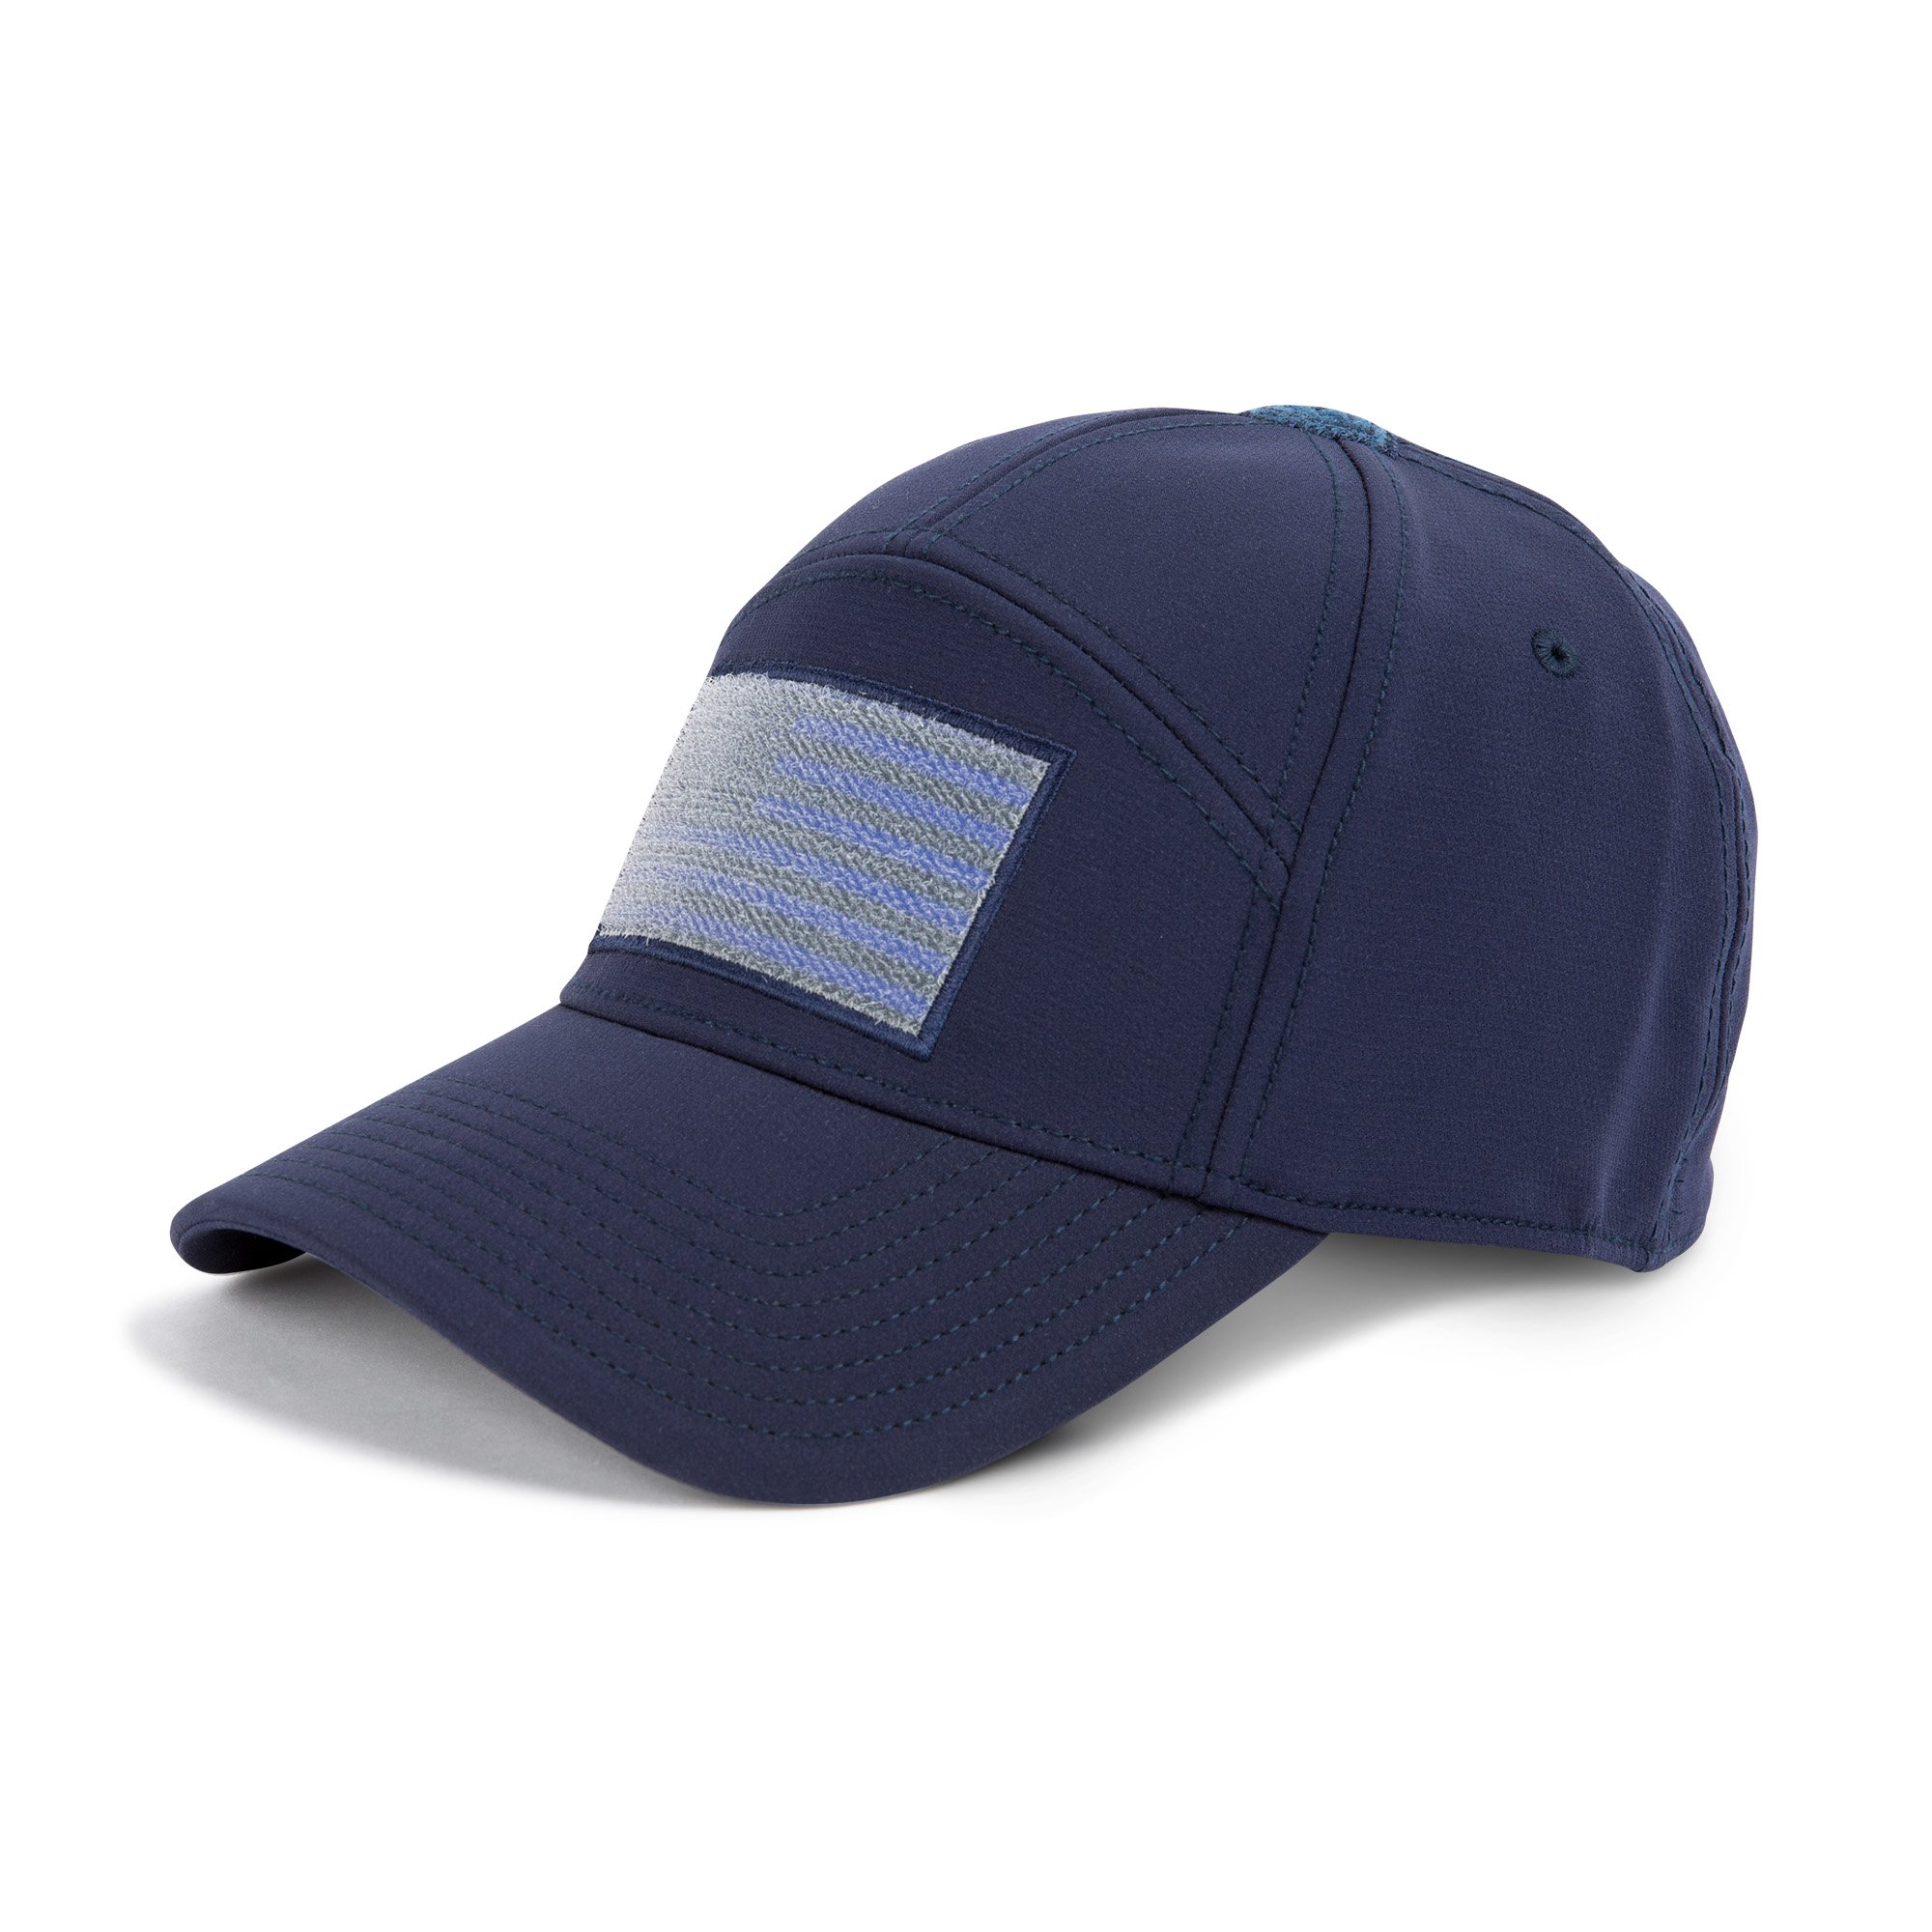 Nón 5.11 Tactical OPERATOR 2.0 A-FLEX CAP – Eclipse